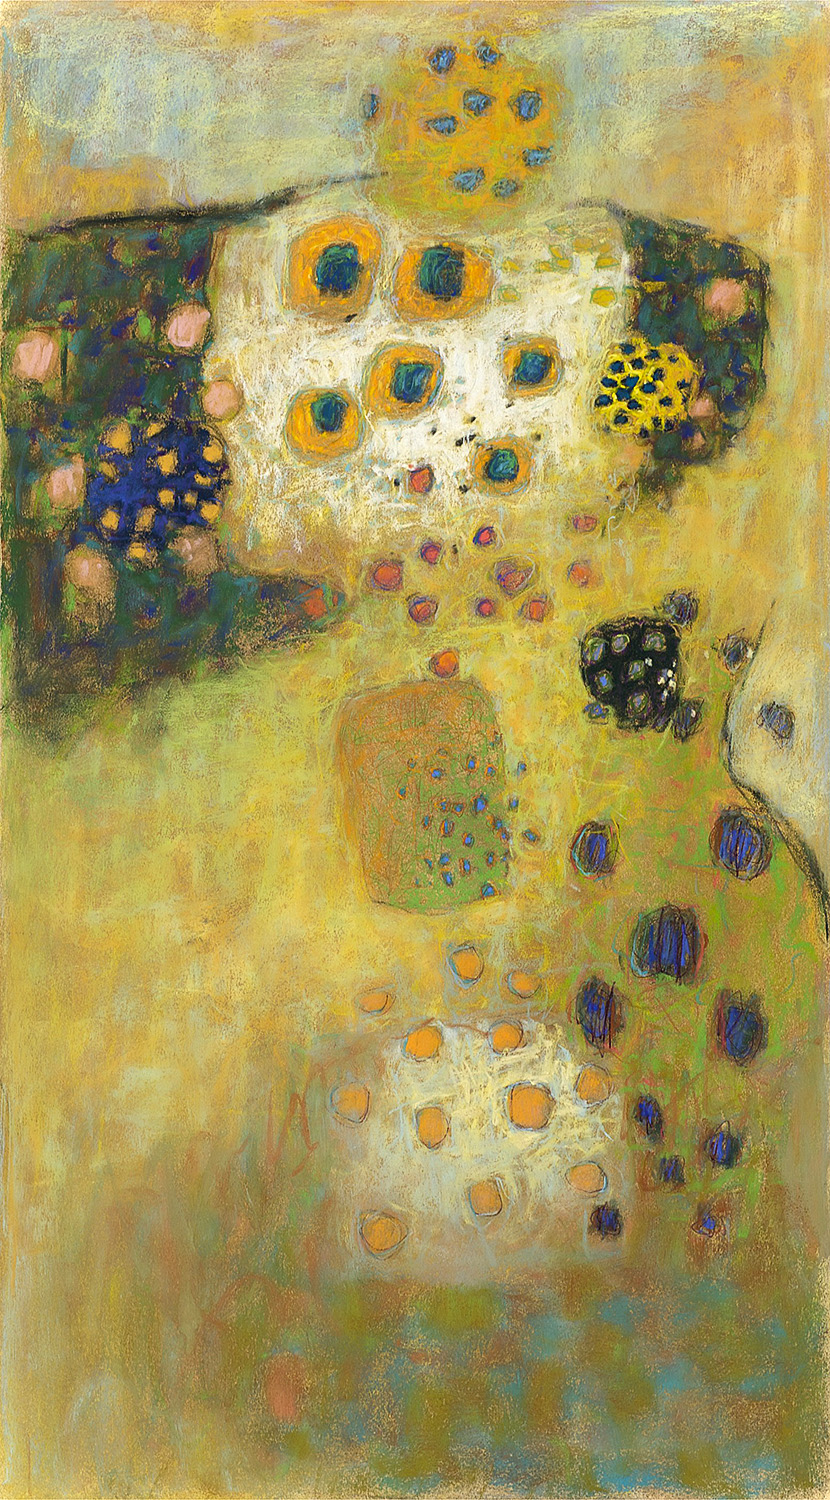 Organized Chaos  | pastel on paper | 36 x 20"